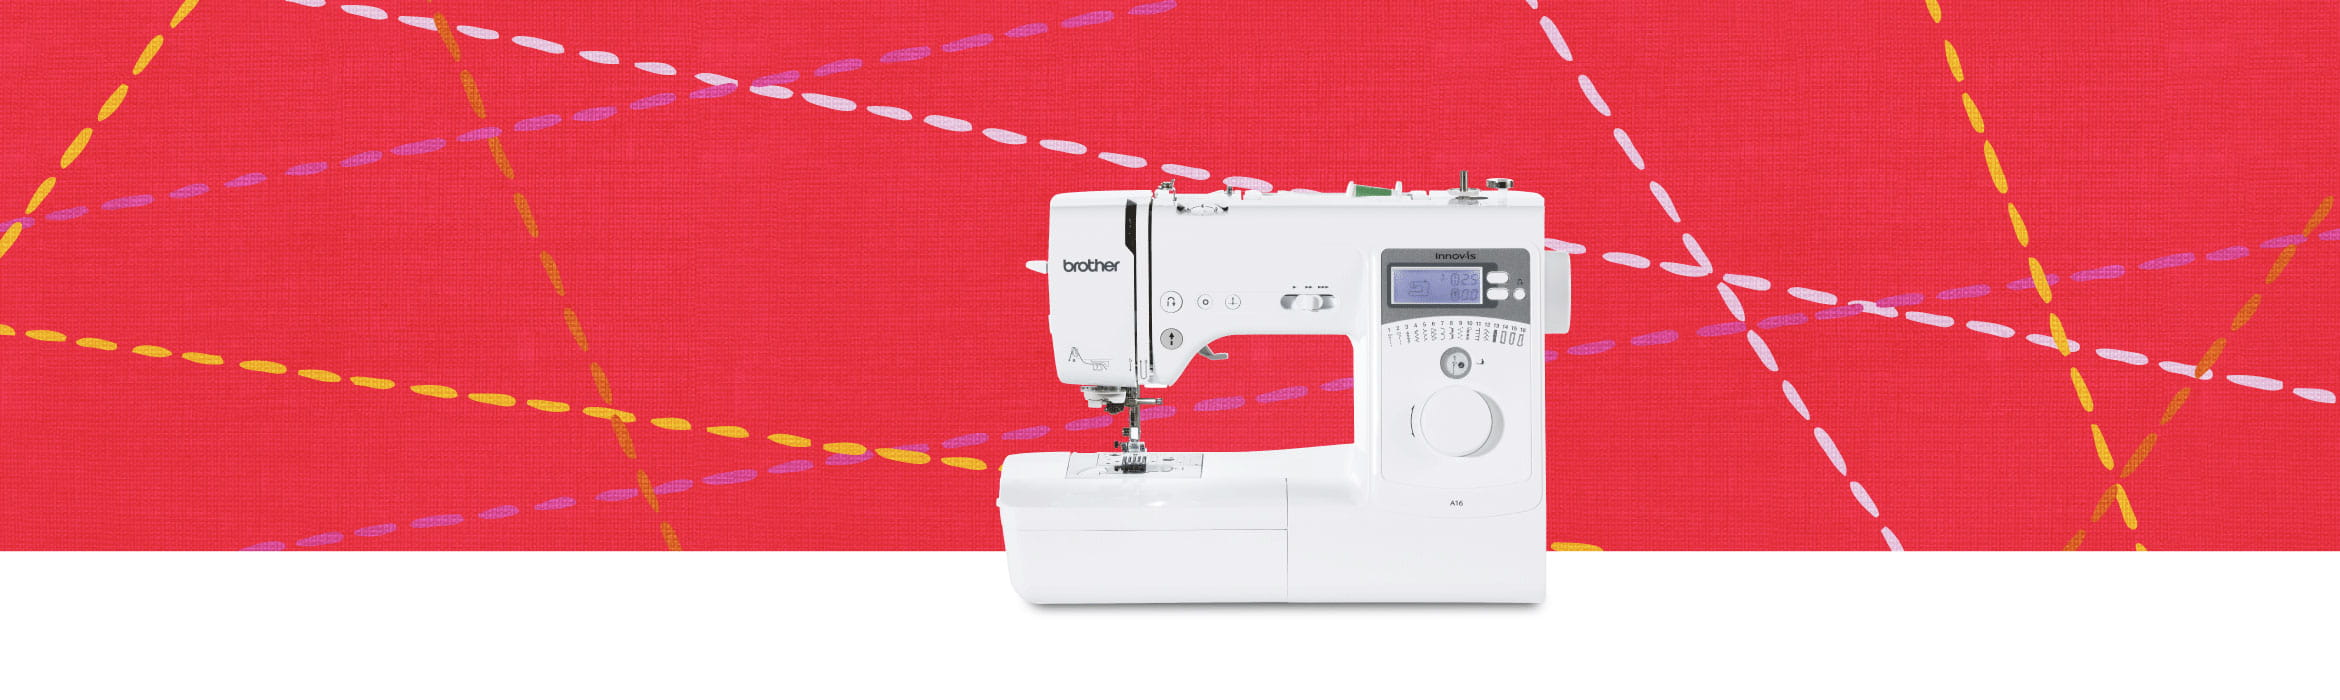 Innov-is A16 sewing machine on bright red background with stitching